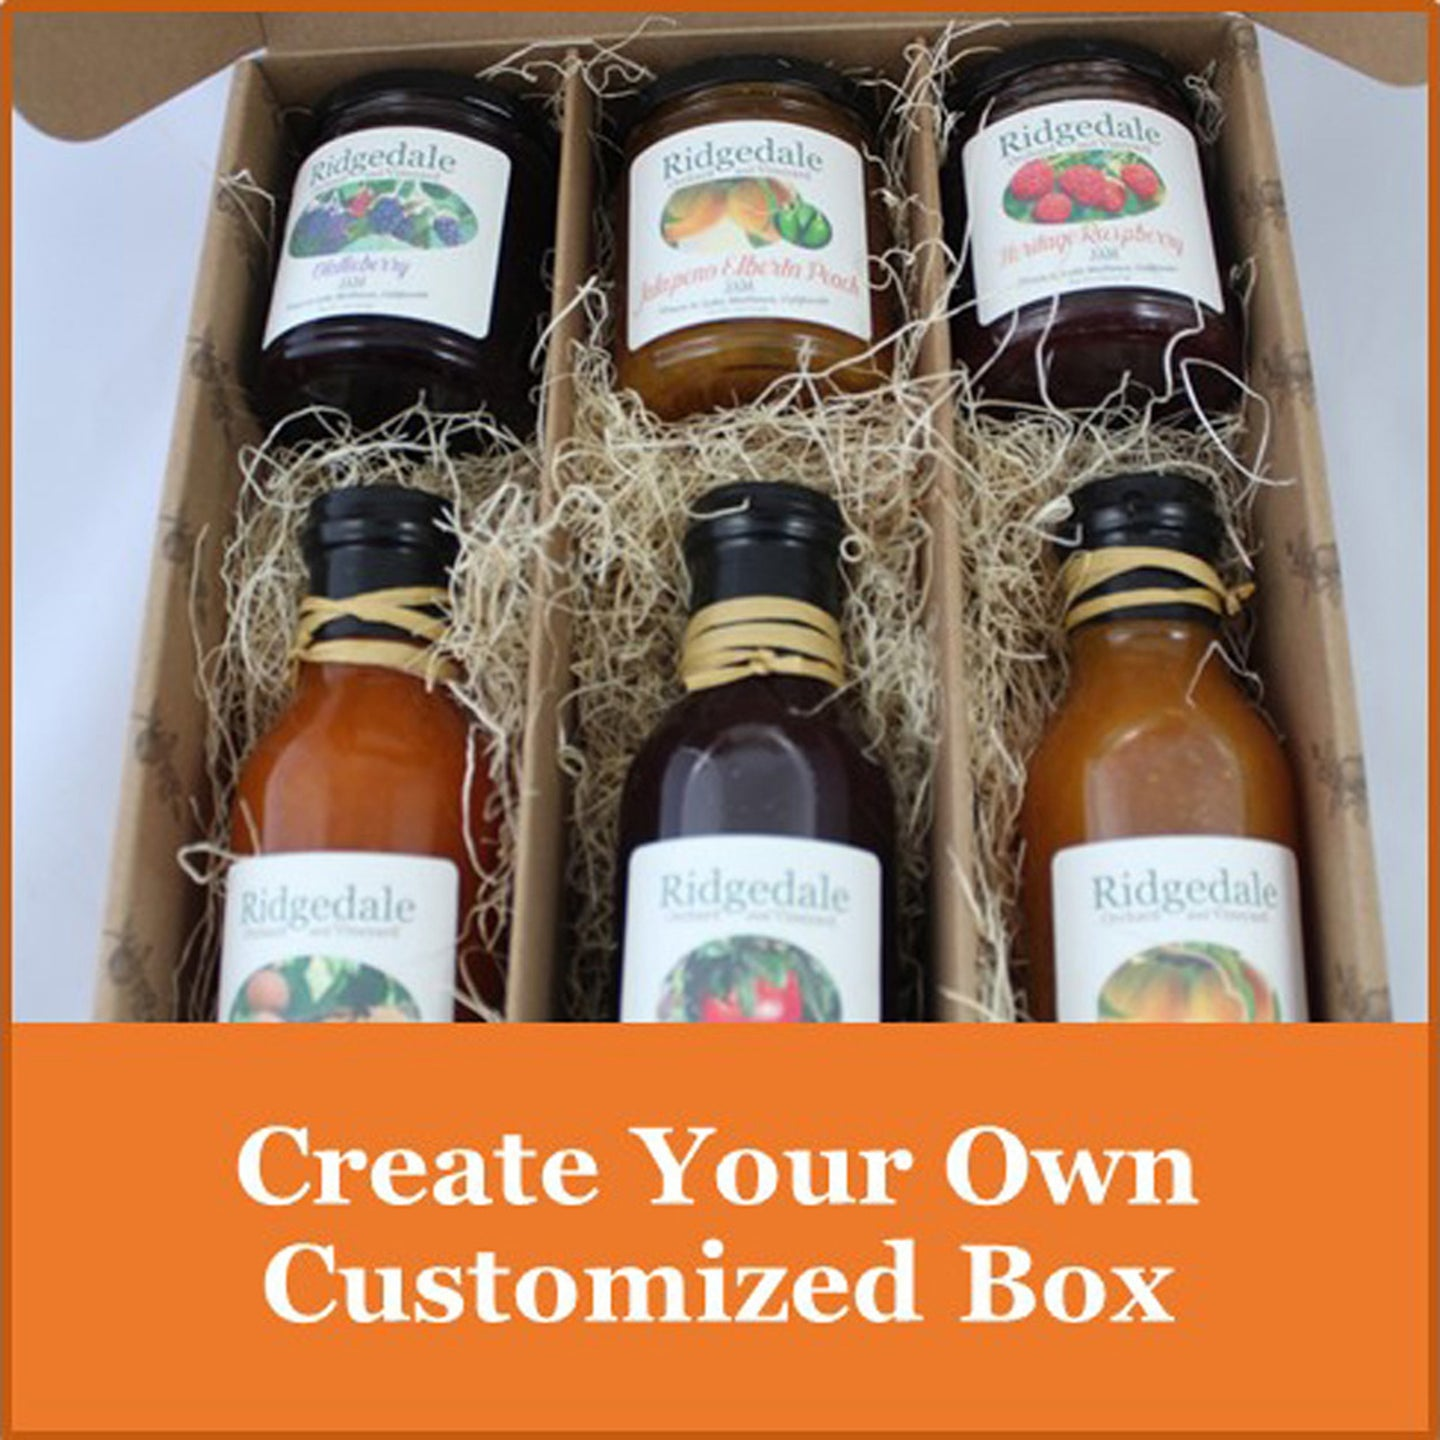 Custom Assortments & Gifts - Ridgedale Orchard & Vineyard